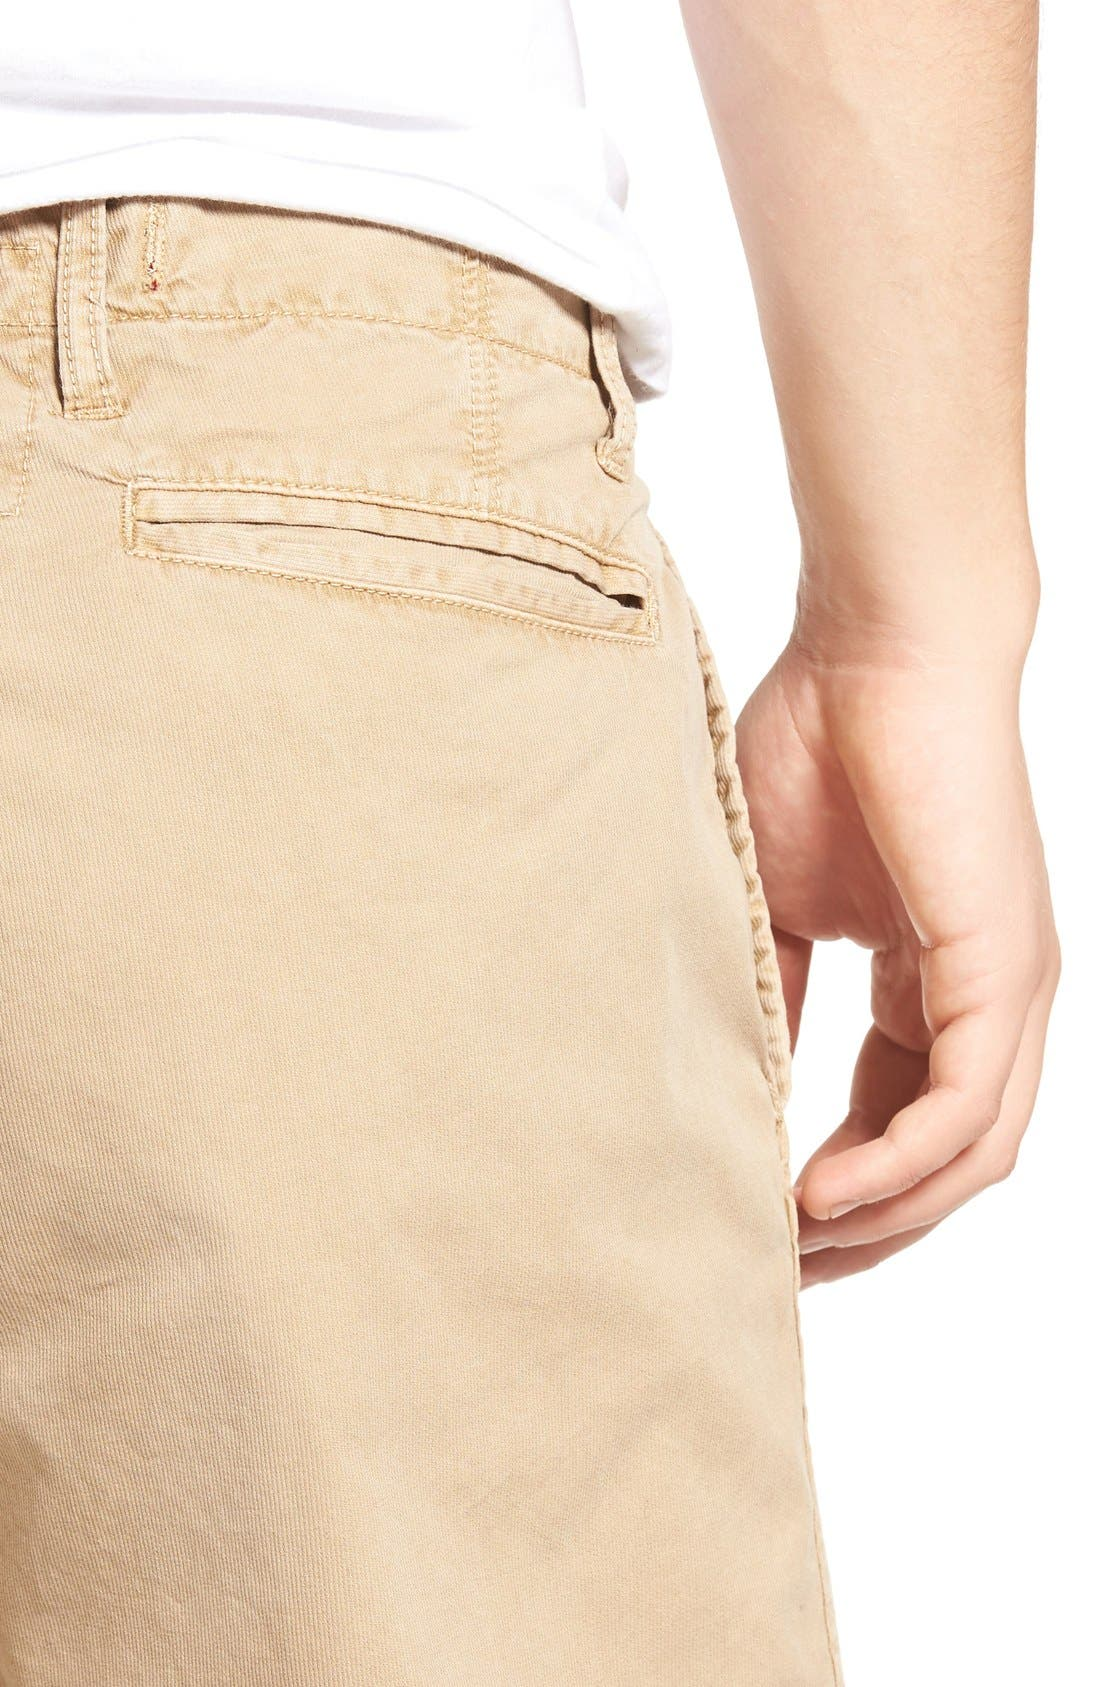 St. Martin Bedford Cord Shorts,                             Alternate thumbnail 14, color,